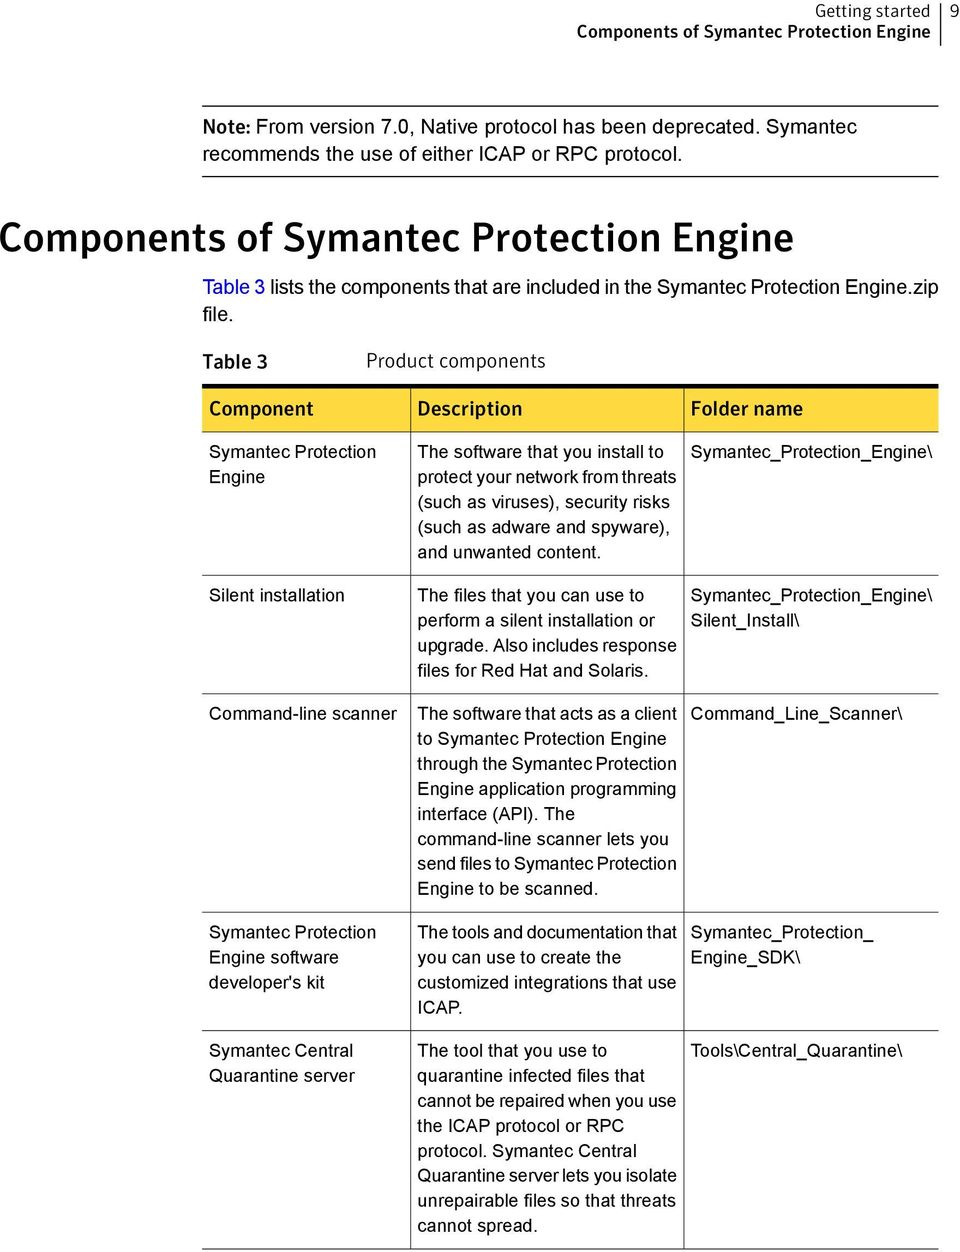 Table 3 Component Product components Description Folder name Symantec Protection Engine The software that you install to protect your network from threats (such as viruses), security risks (such as